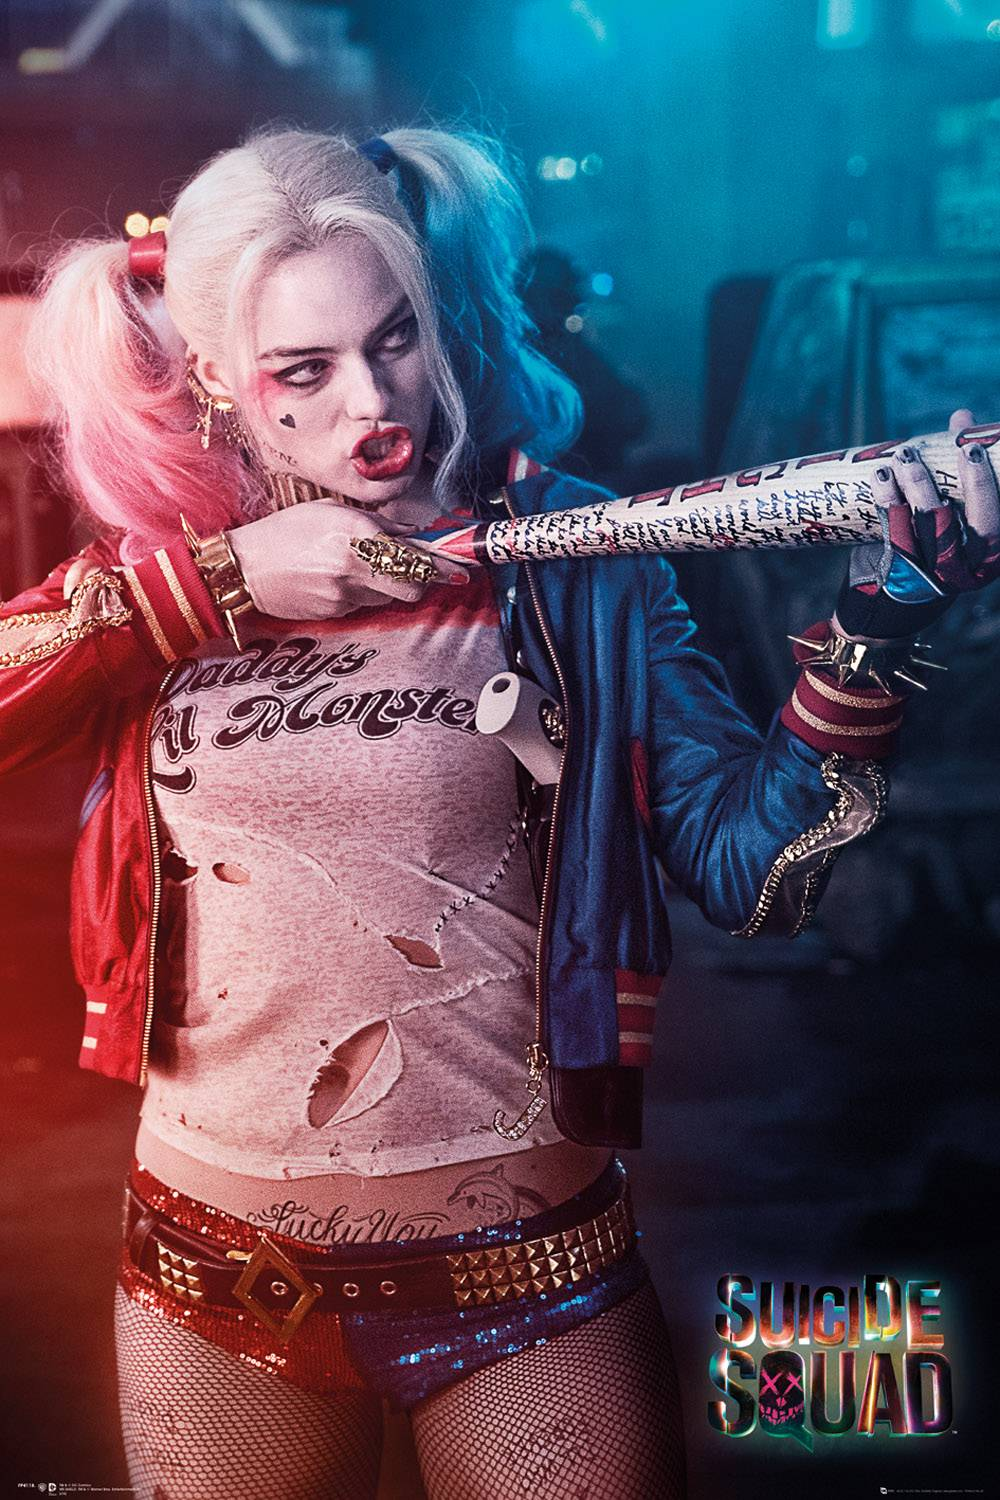 Harley Quinn Bettwäsche Kaufe Suicide Squad Harley Quinn Maxi Poster